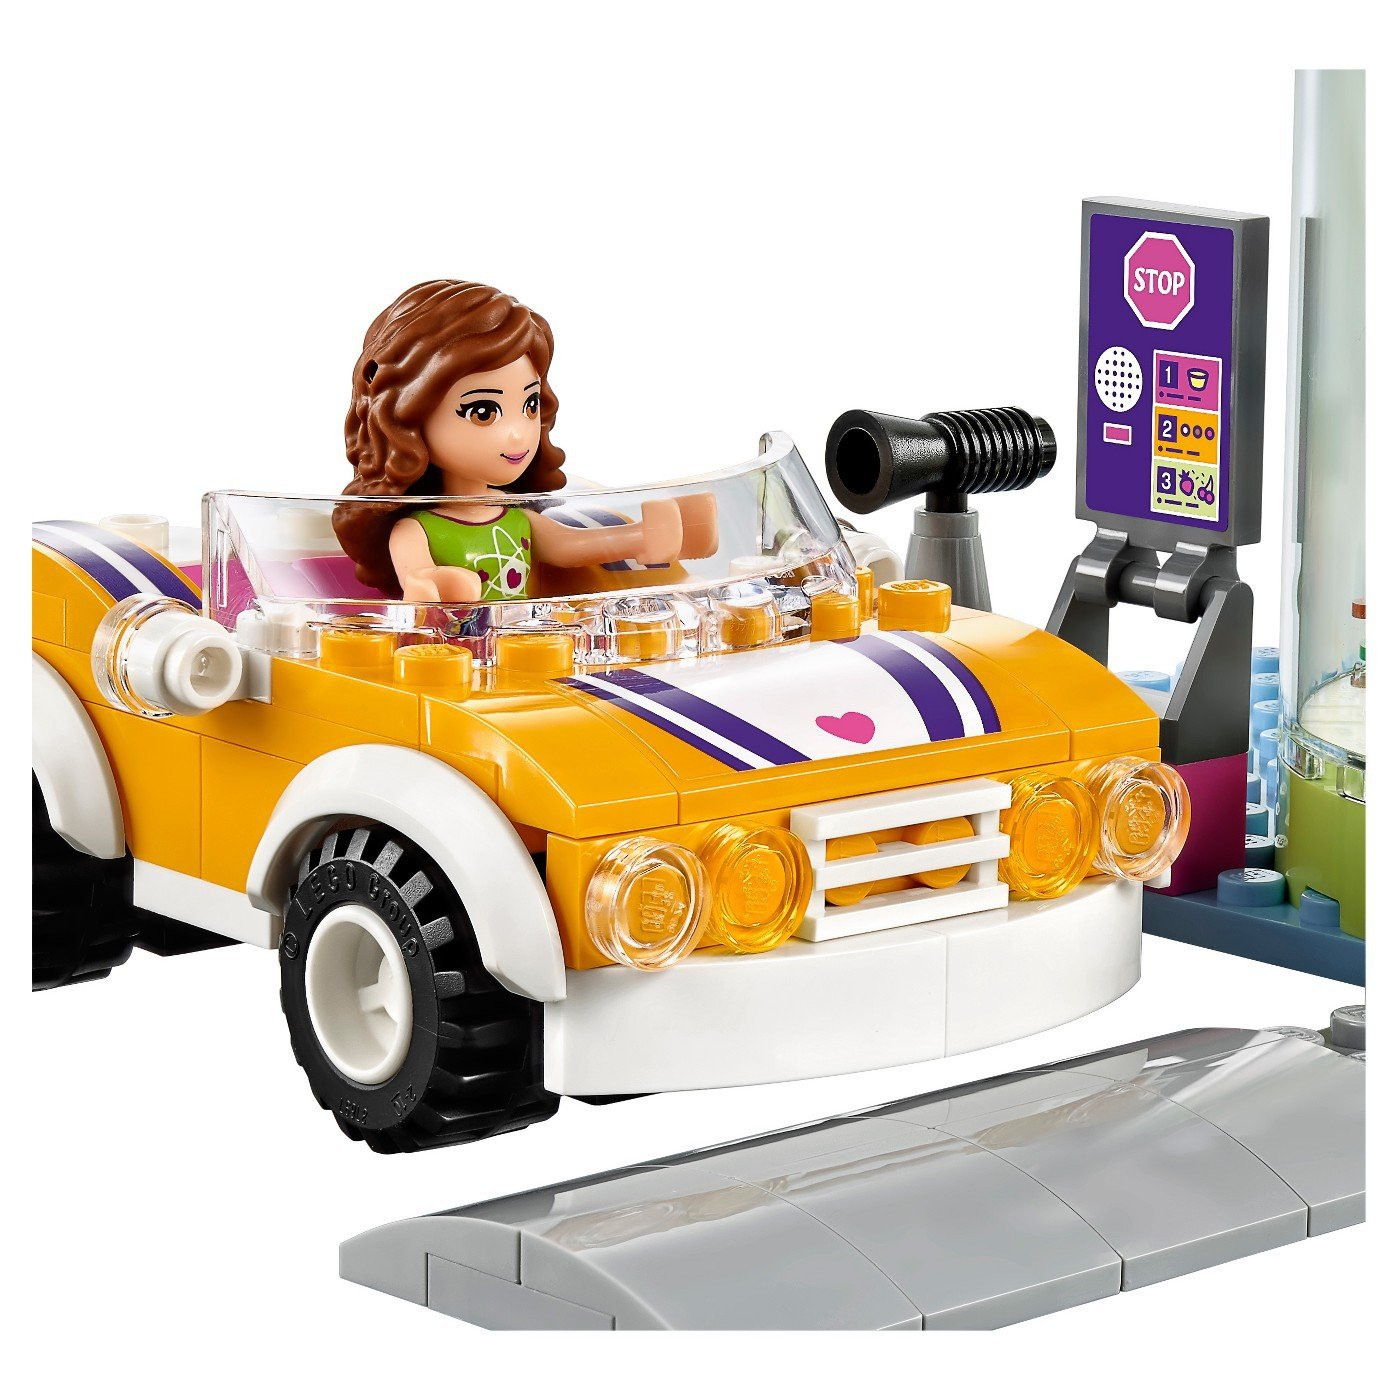 Amazoncom Lego Friends Frozen Yogurt 41320 370 Piece Toys Games